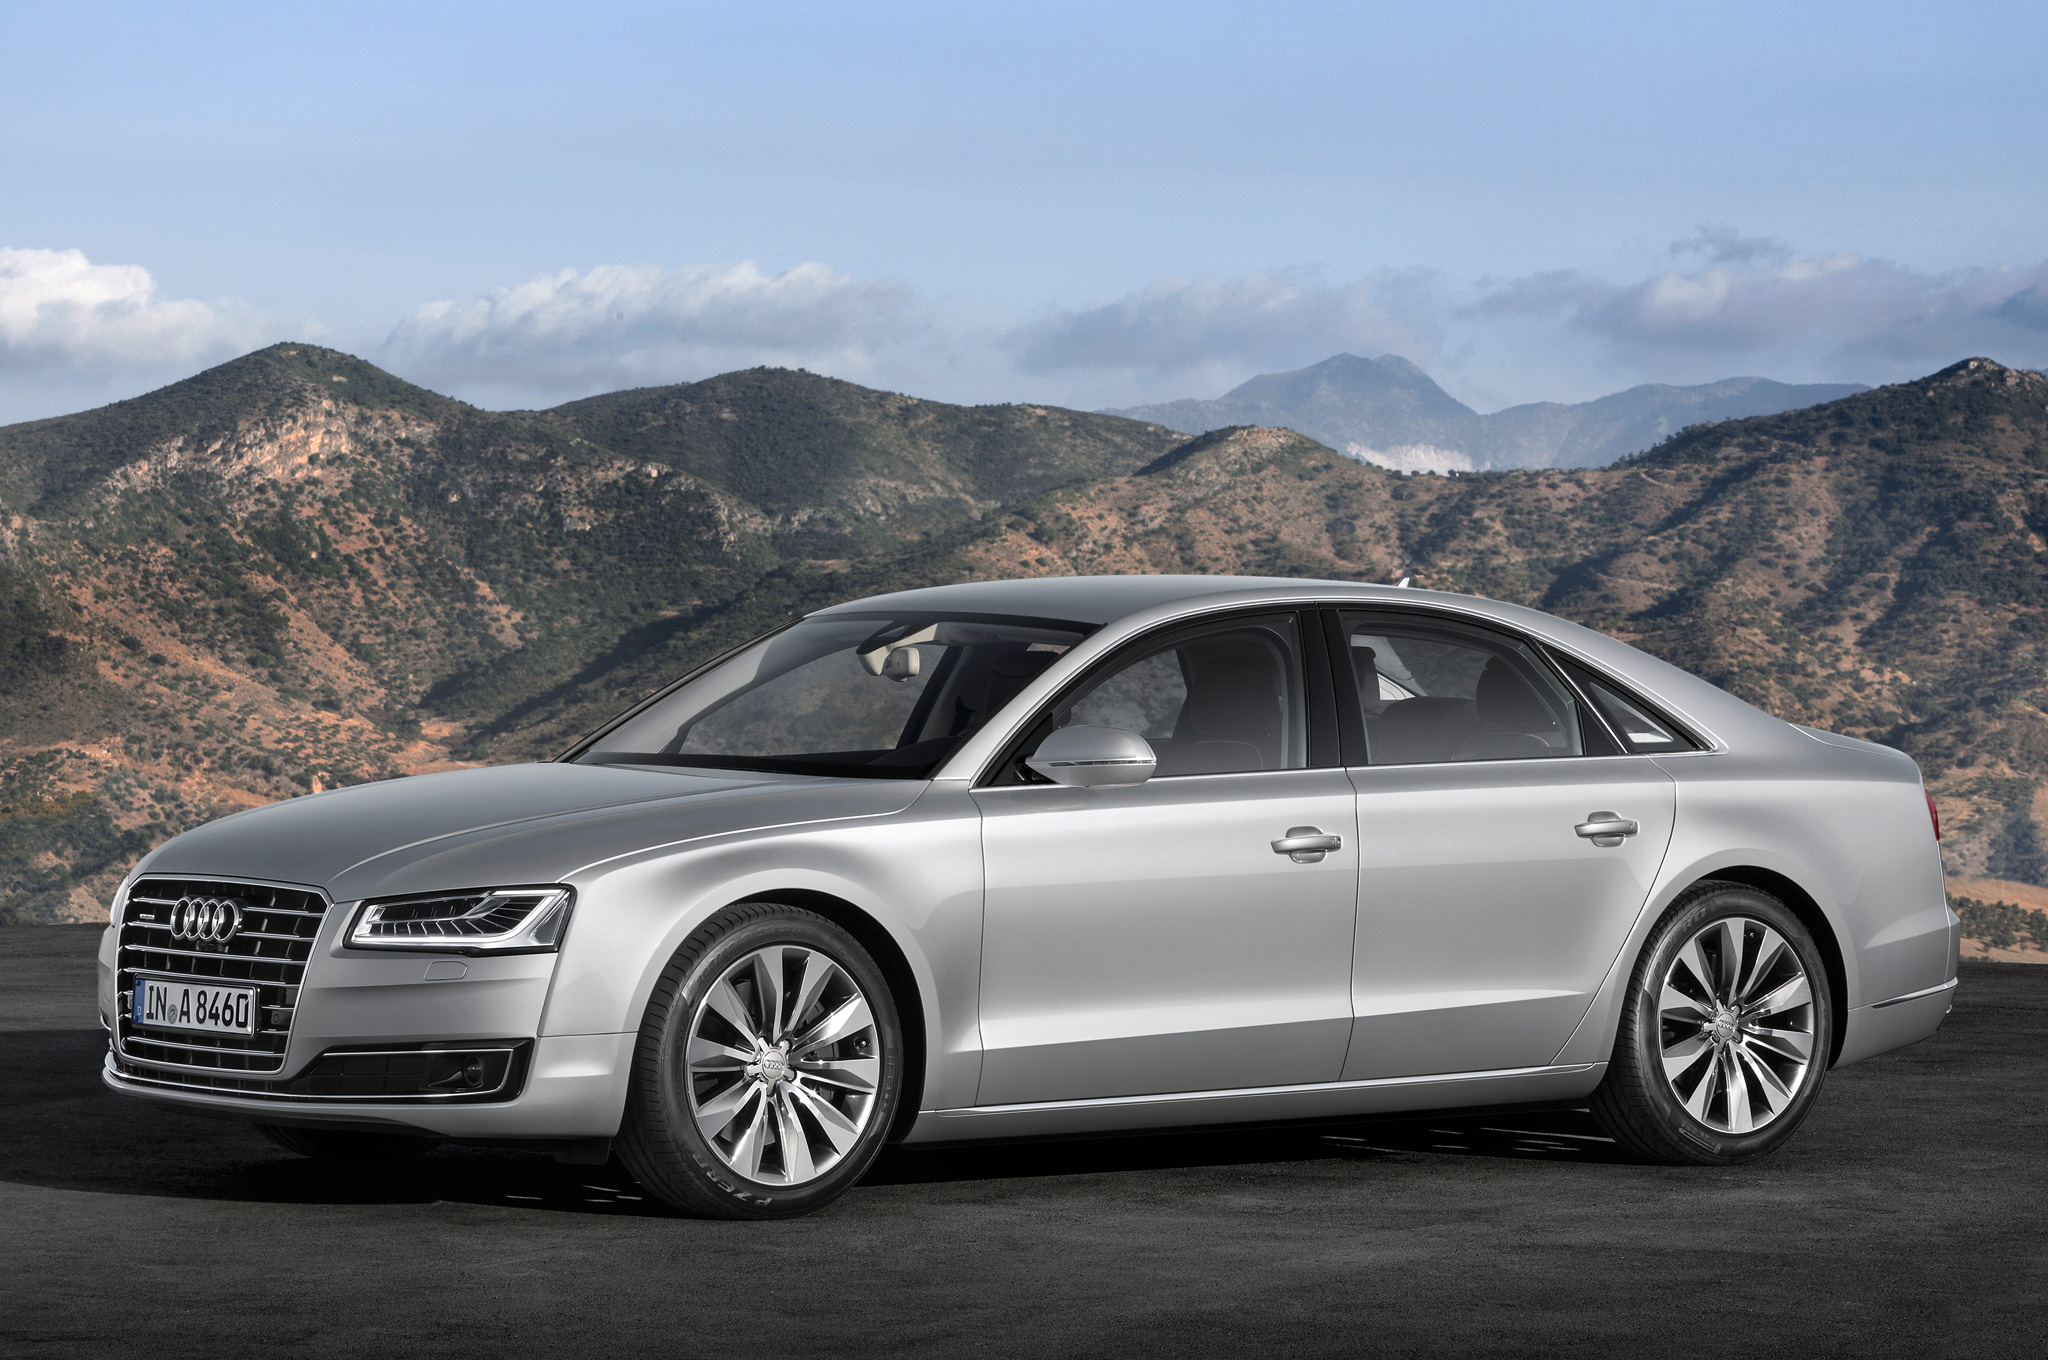 2015 audi a8 reviews photos video and price hiclasscar. Black Bedroom Furniture Sets. Home Design Ideas